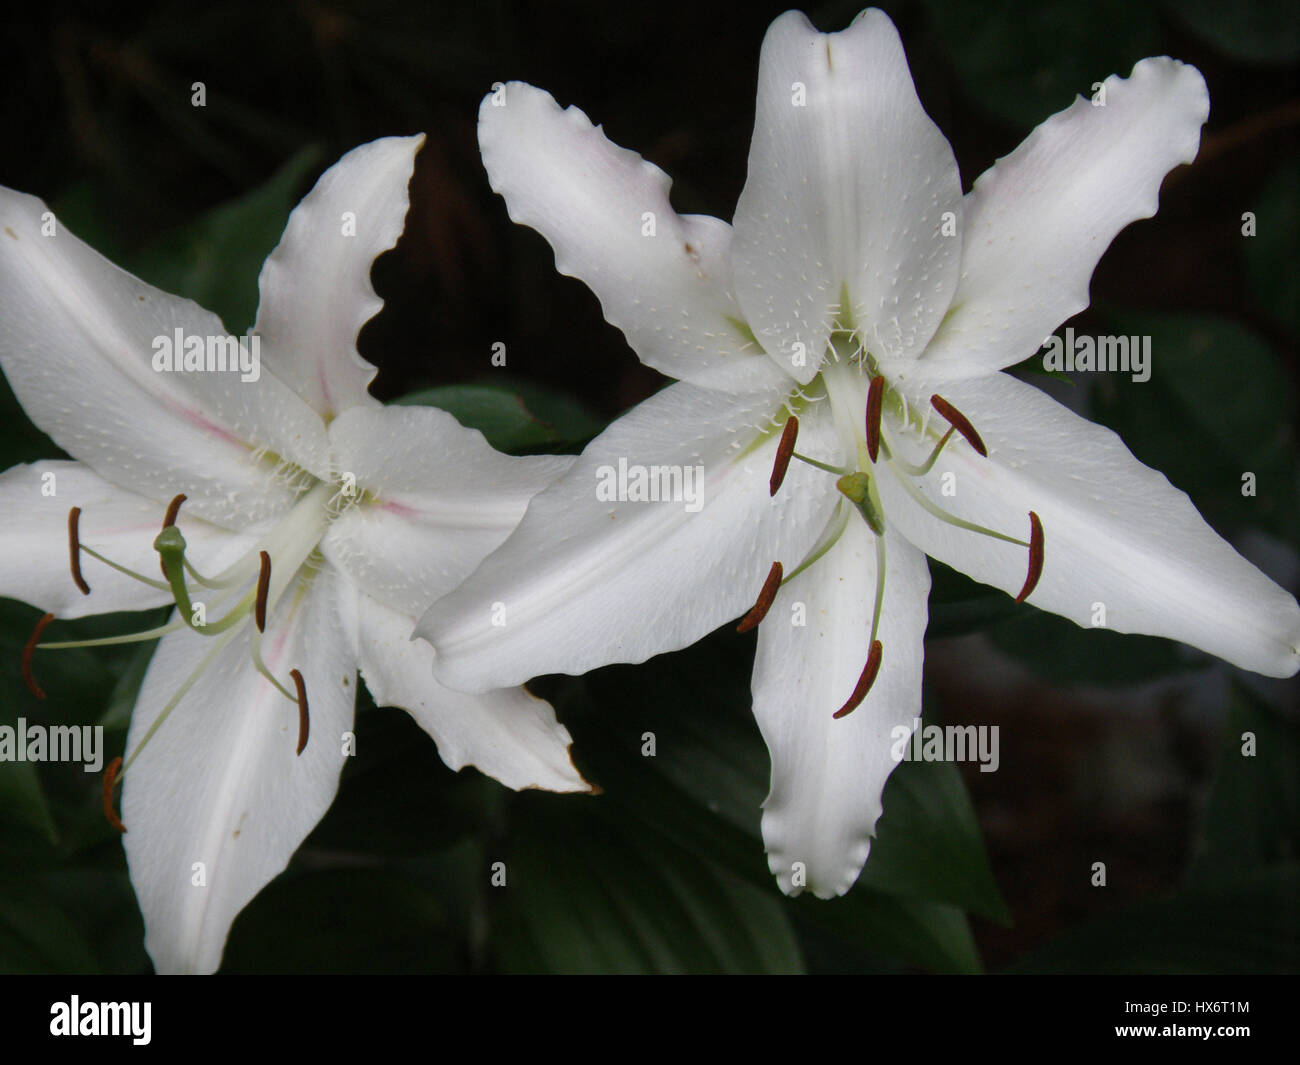 Stargazer lilies stock photos stargazer lilies stock images alamy flowering pair of white stargazer lilies in a garden stock image mightylinksfo